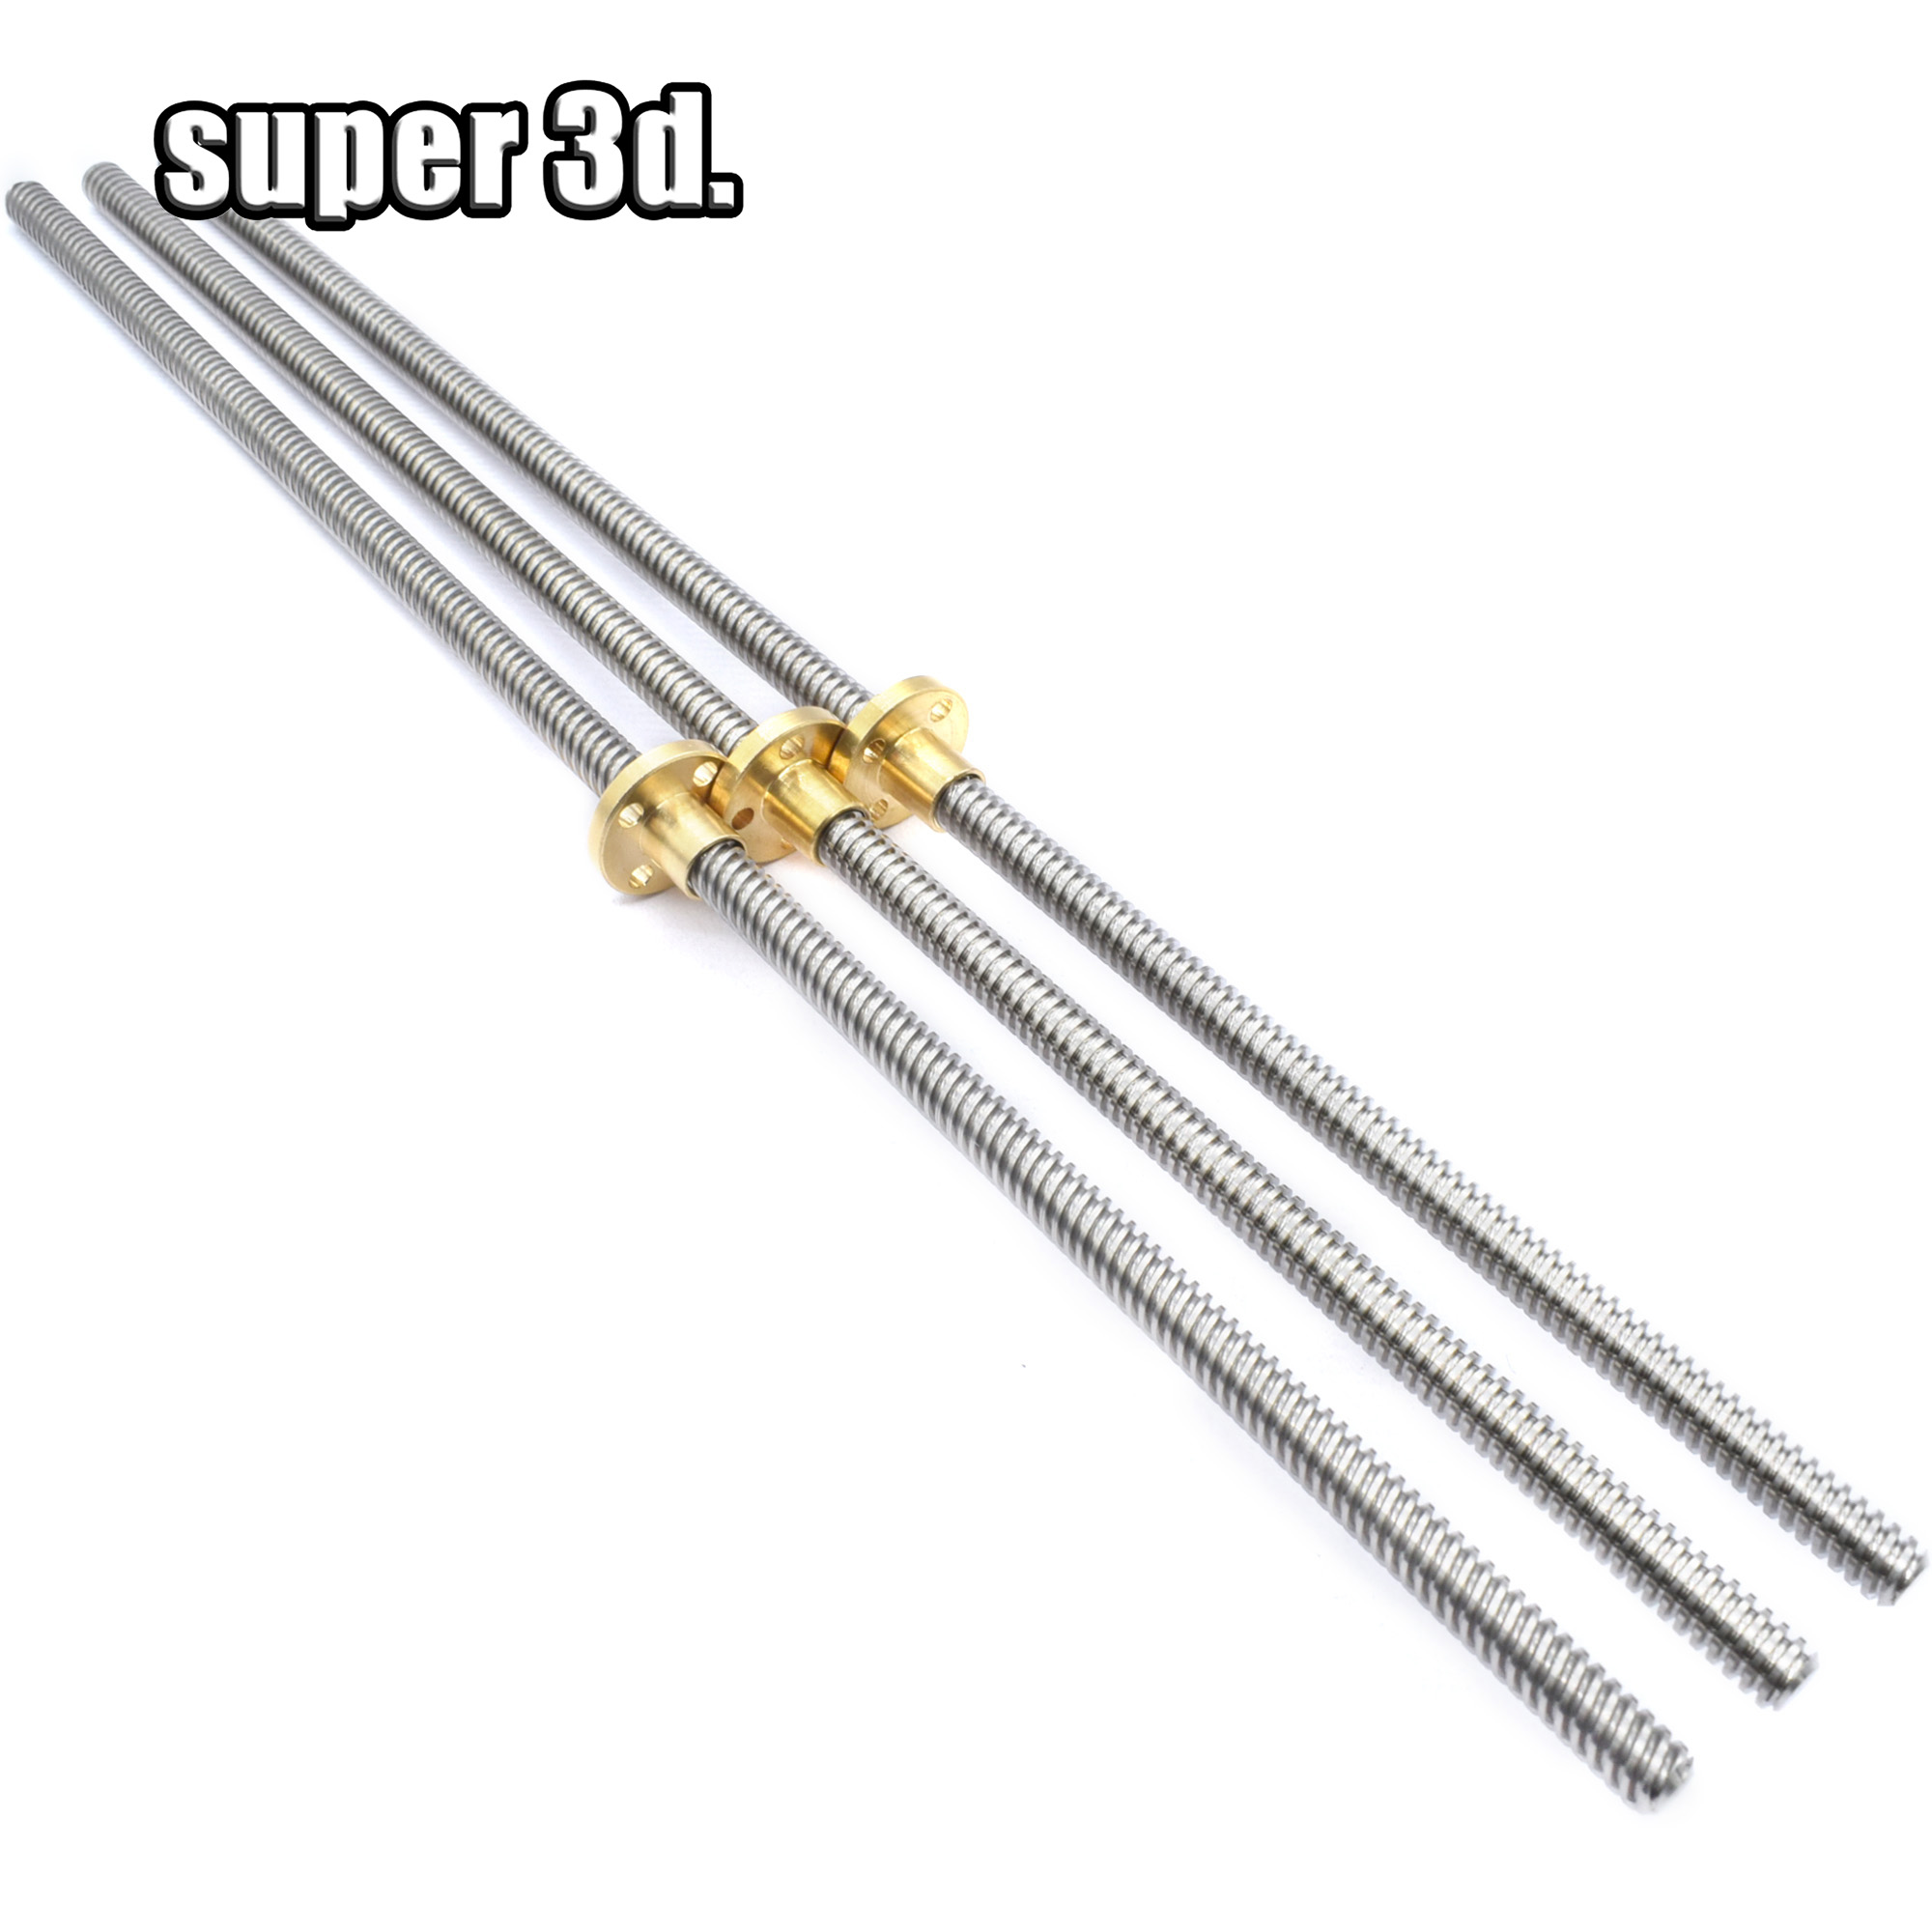 T8 Lead Screw Rod OD 8mm Pitch 2mm Lead 2mm Length 150mm-750mm Threaded Rods With Brass Nut For Reprap 3D Printer